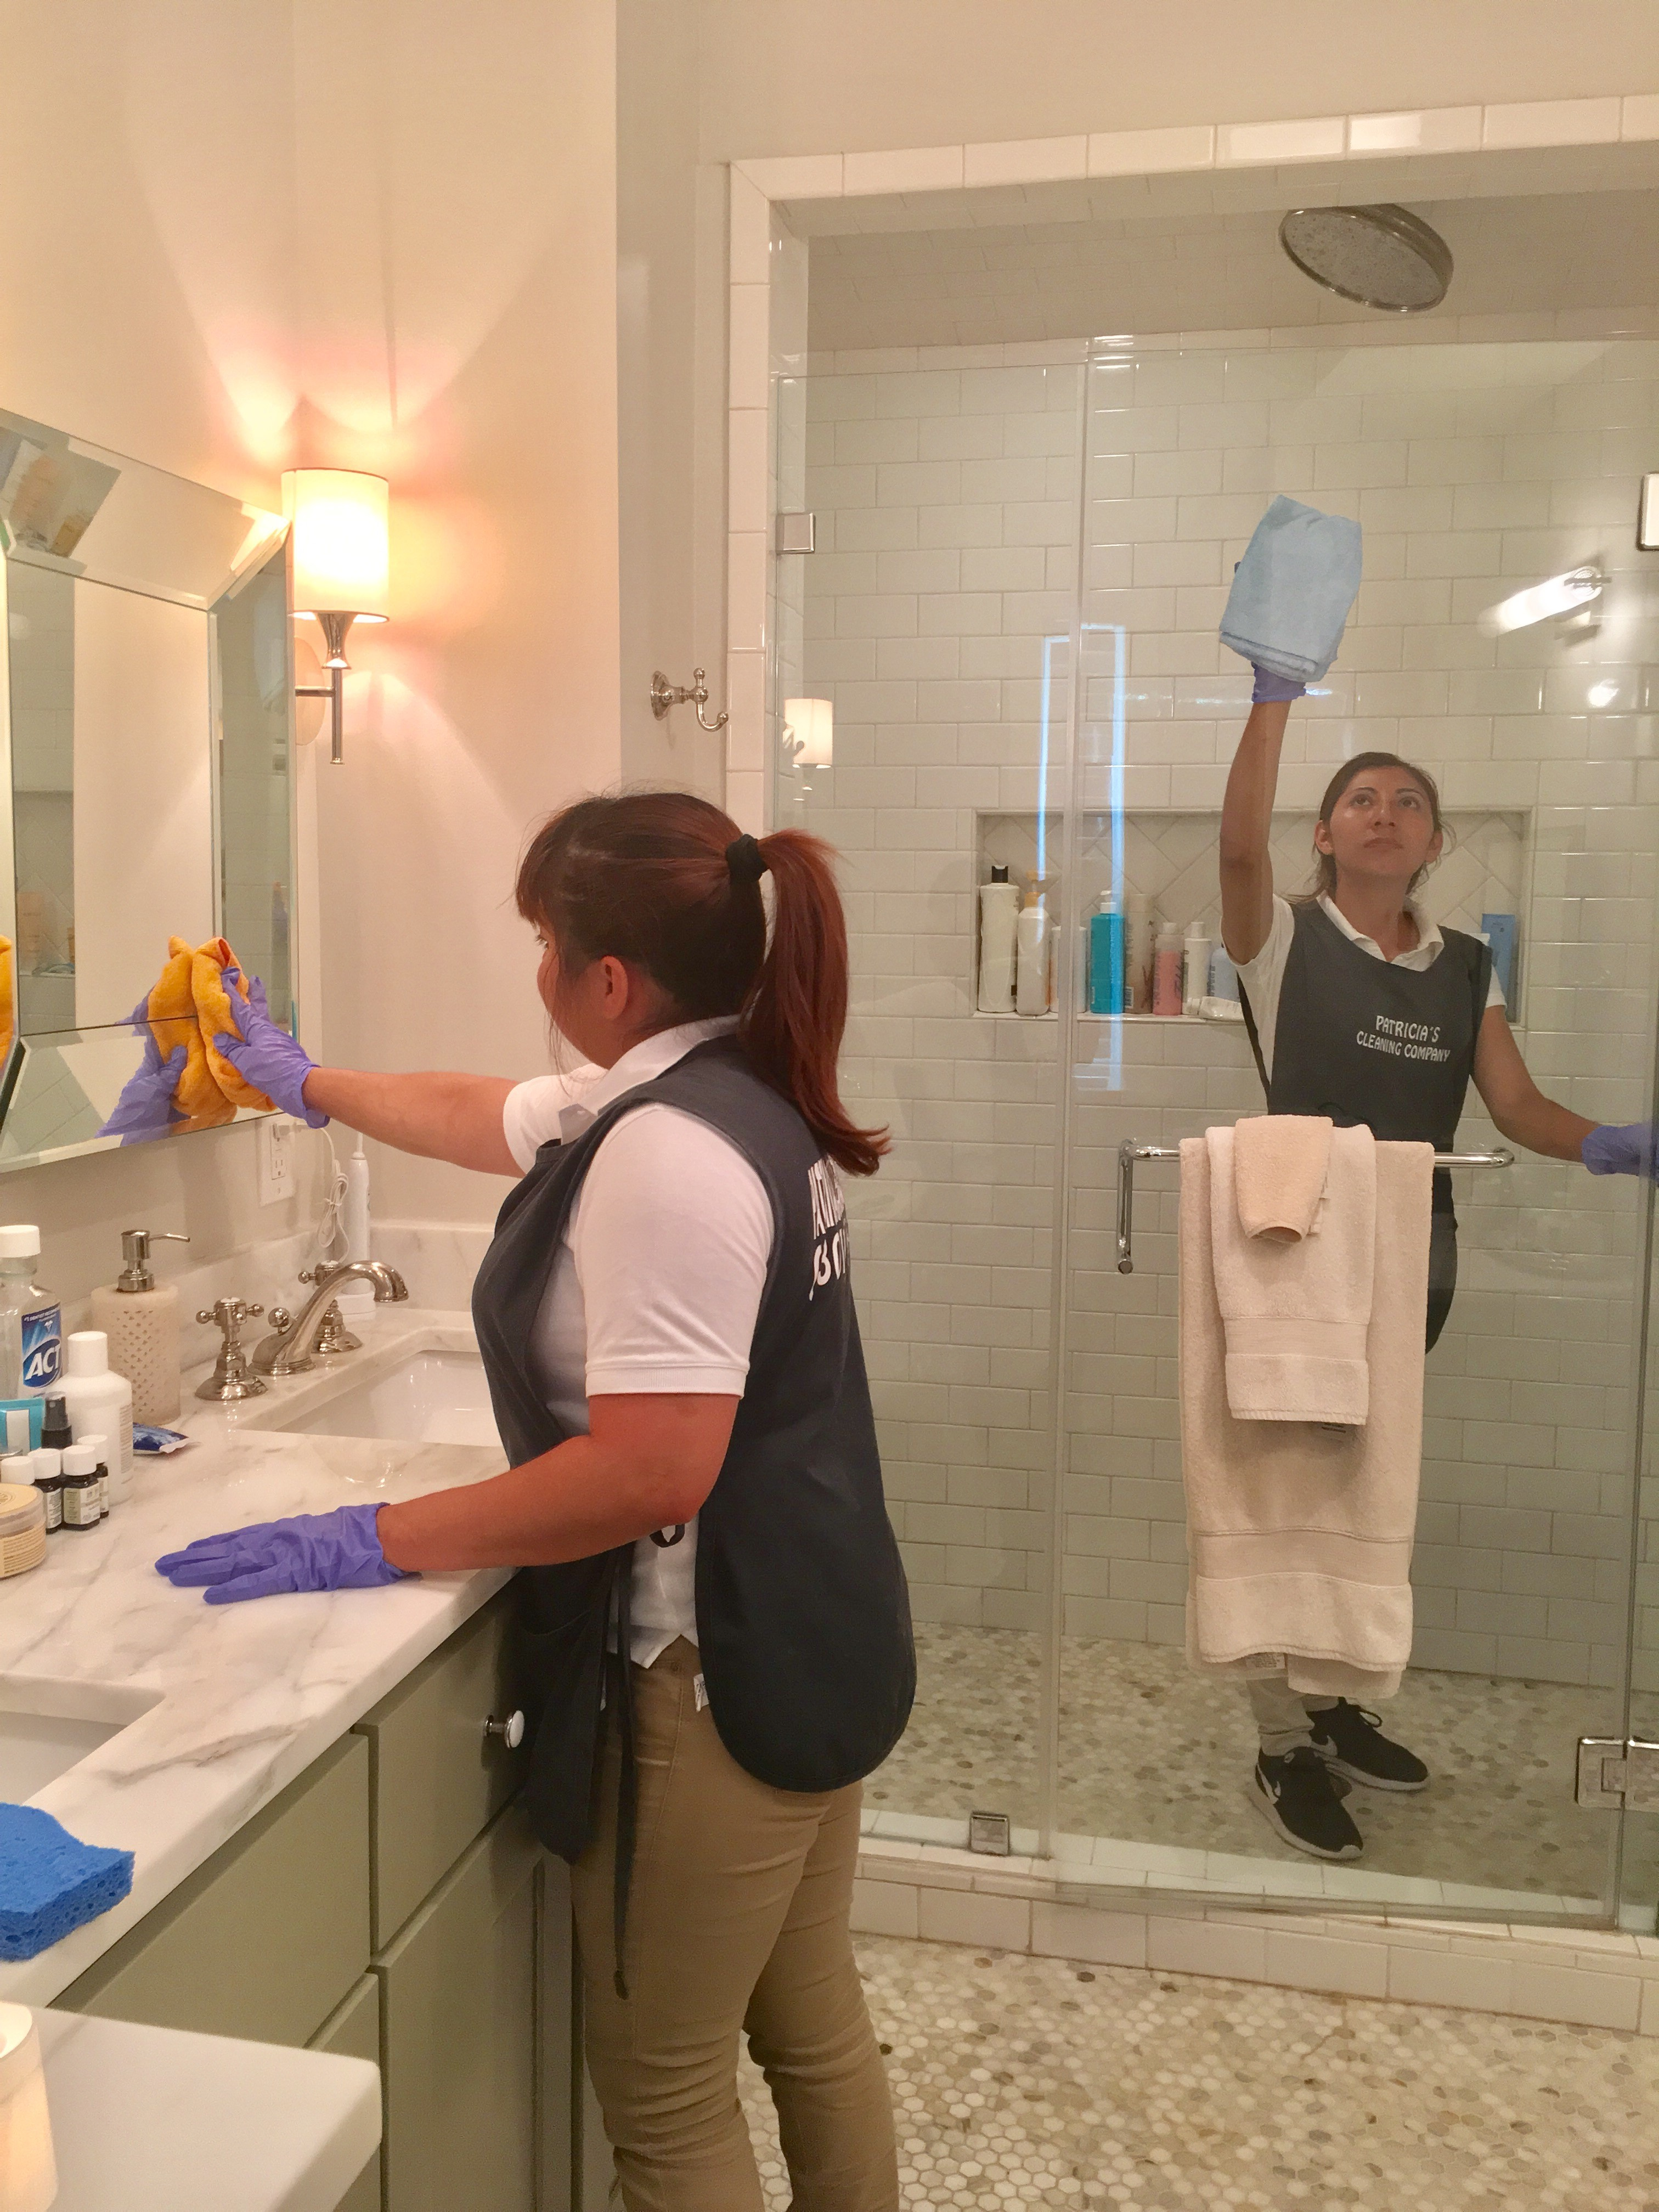 Patricia's Cleaning Company image 2